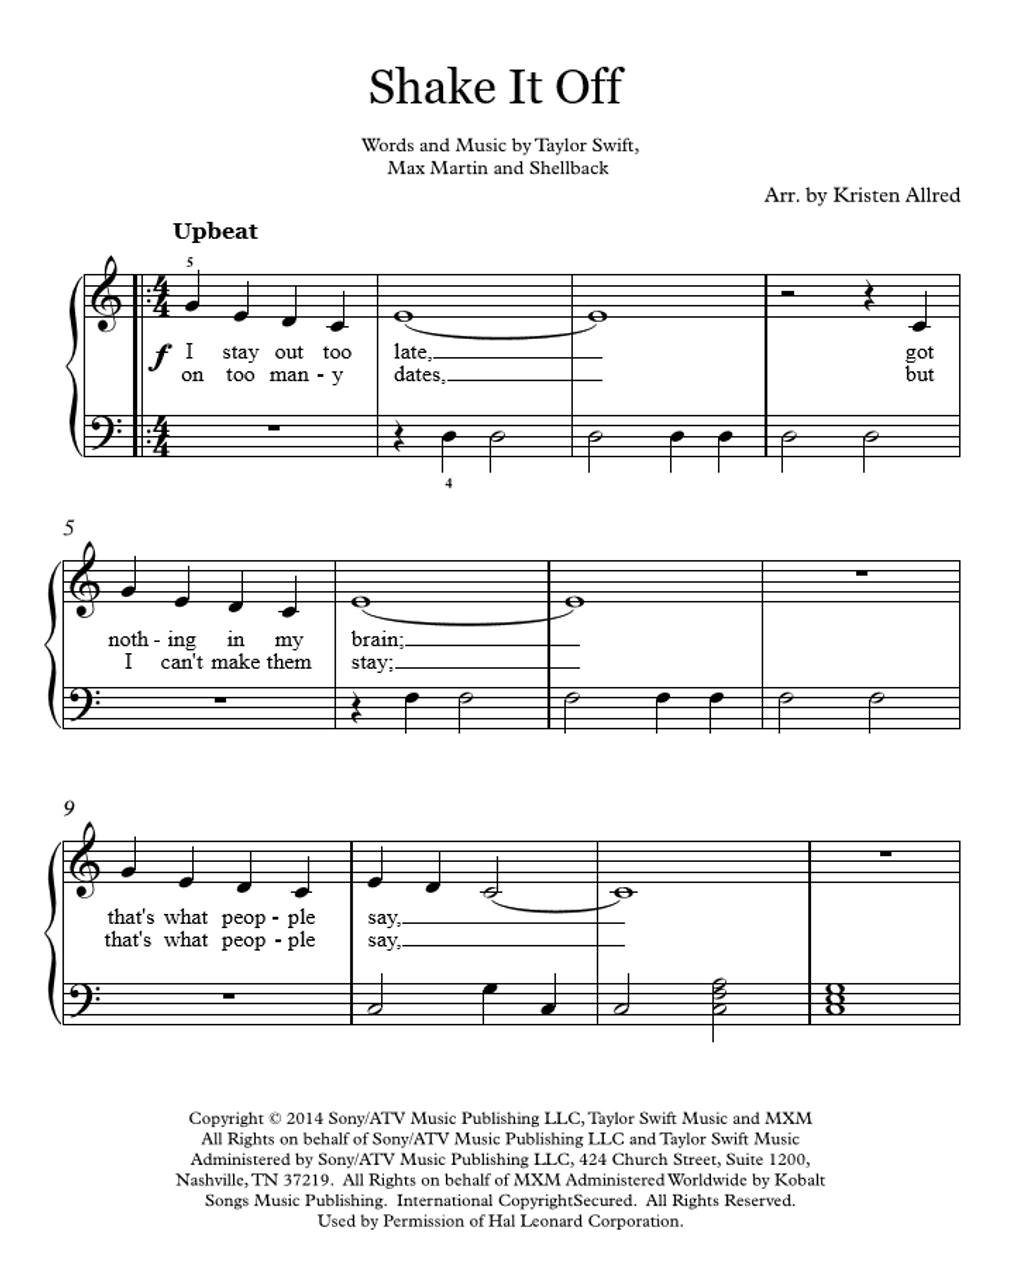 Piano piano sheet music for popular songs : Shake It Off - Taylor Swift - Easy Piano Cover Sheet Music